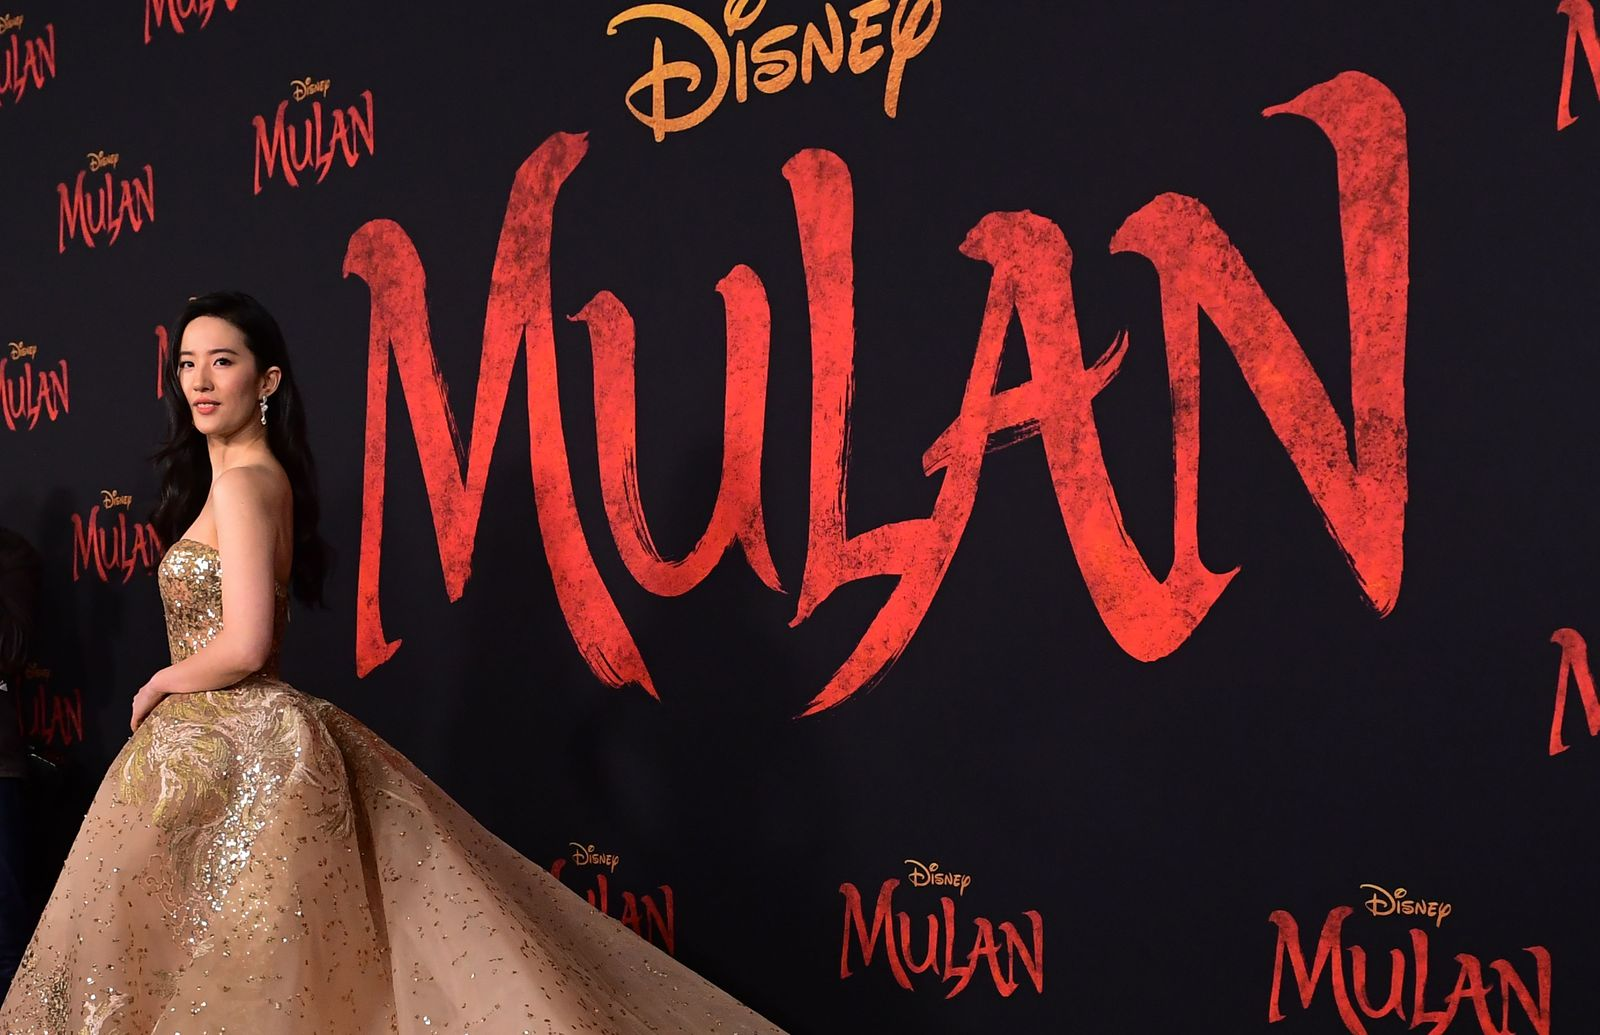 FILES-US-ENTERTAINMENT-MULAN-DISNEY-FILM